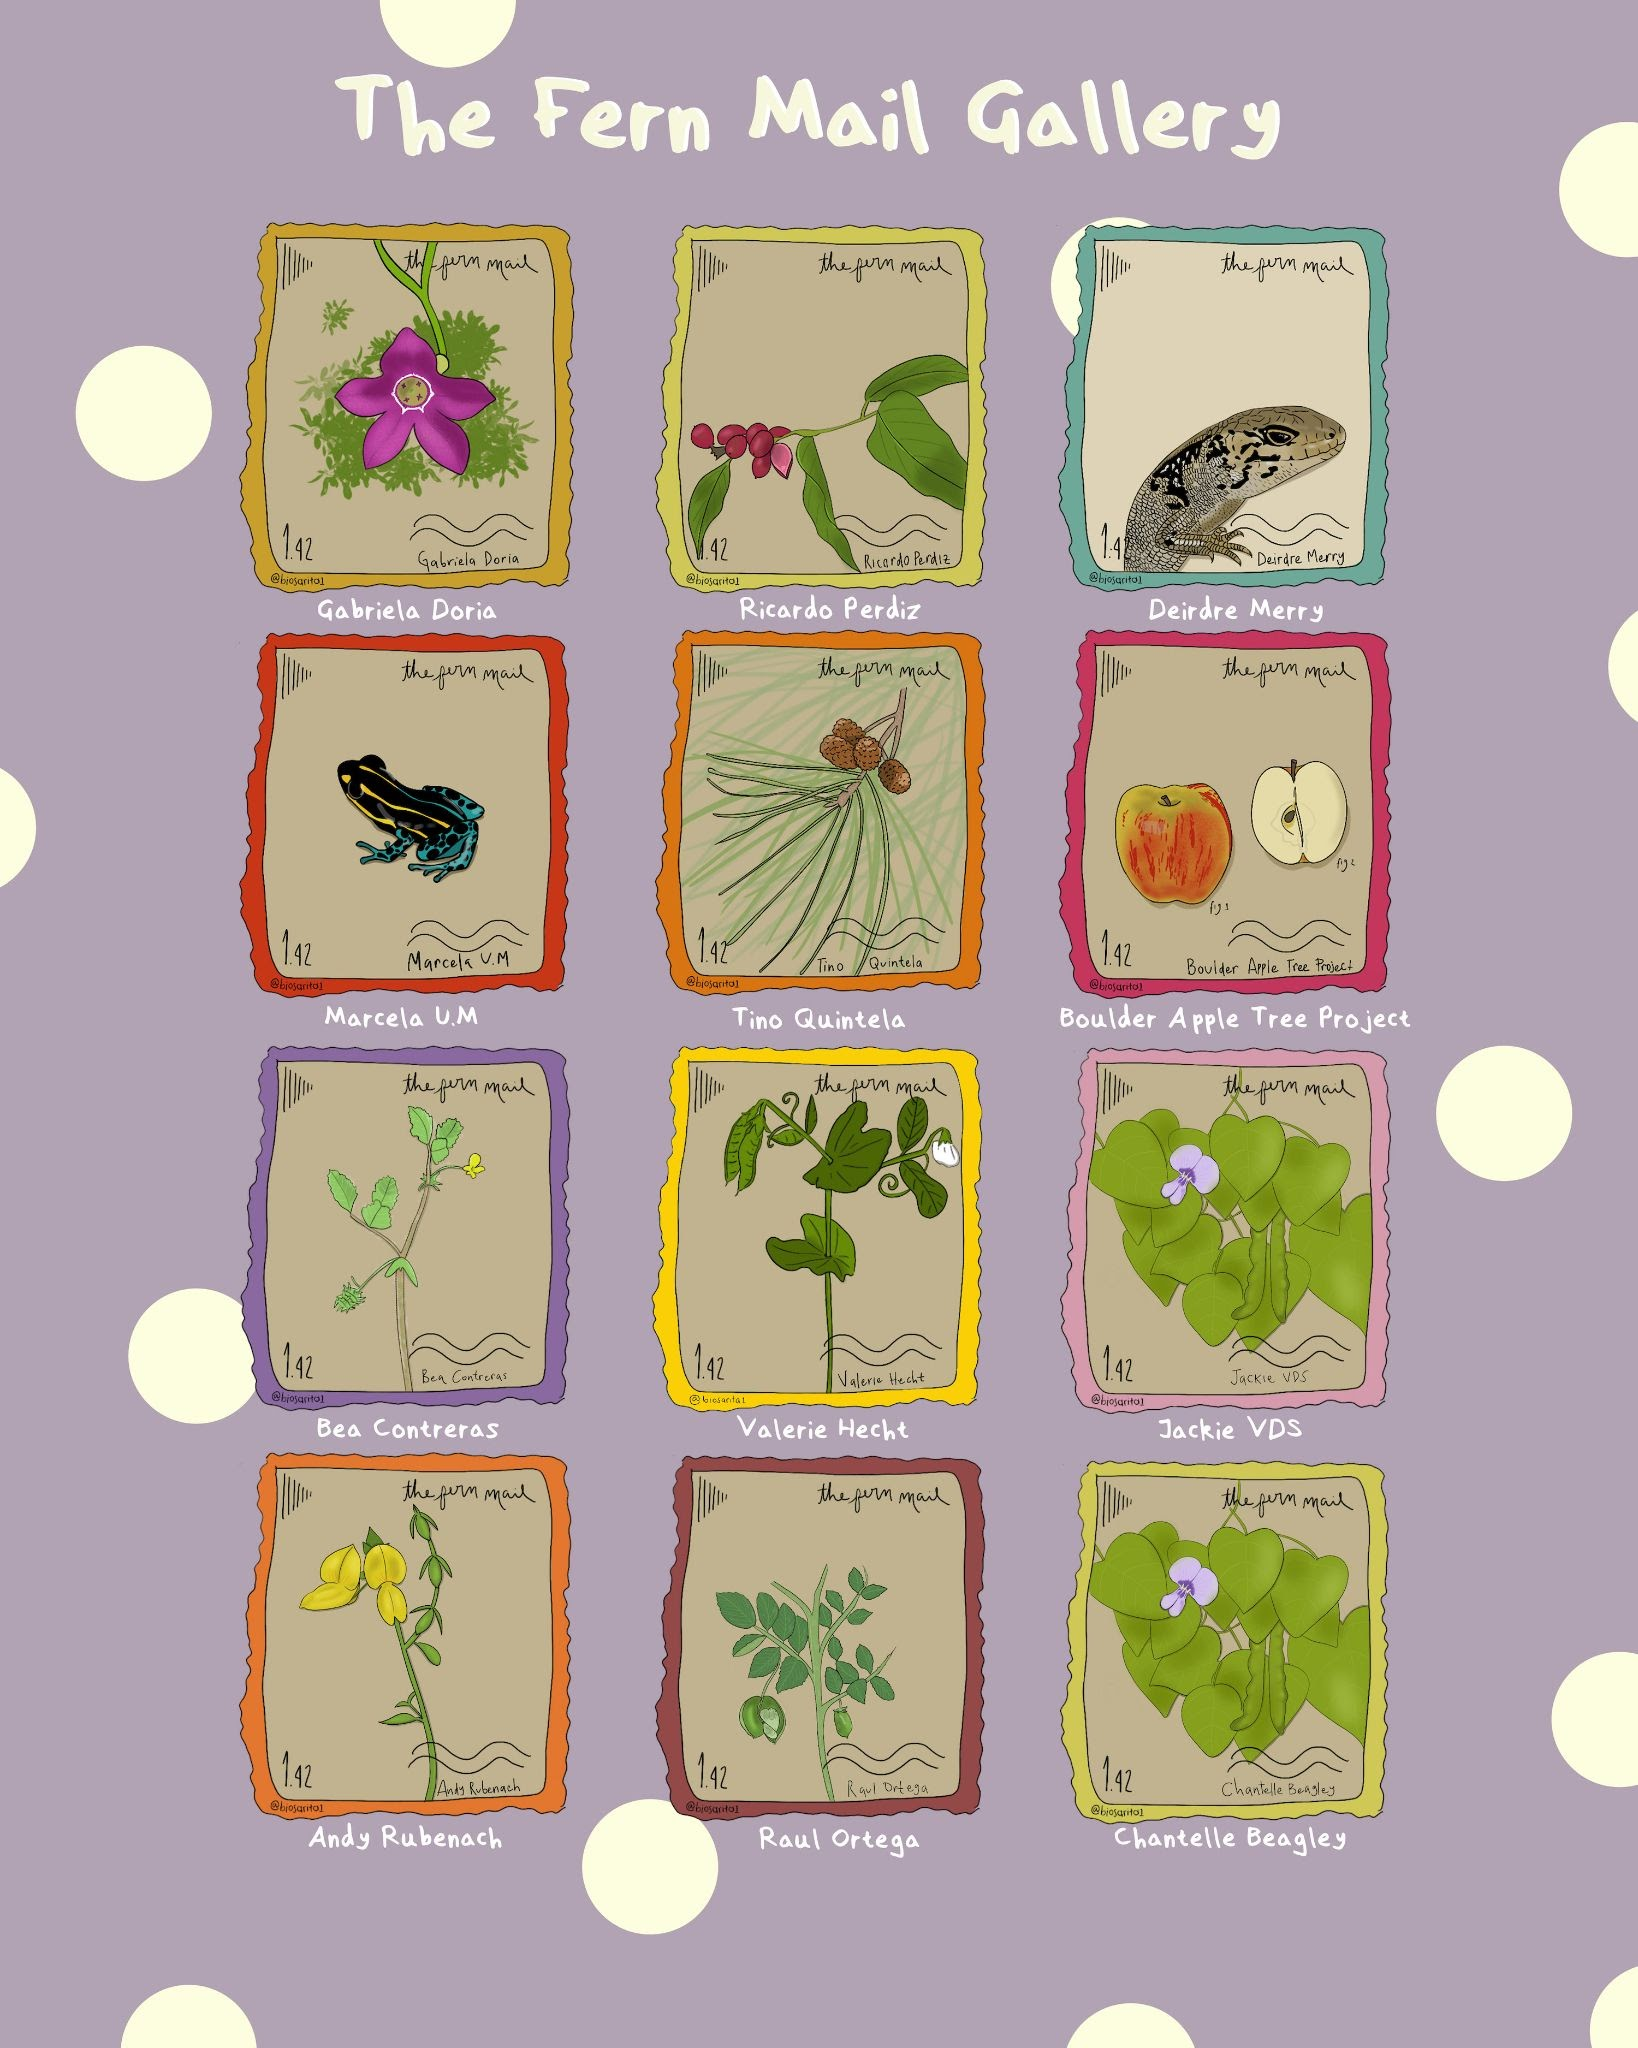 alt text: The Fern Mail Gallery by Sarita Muñoz-Gómez. On a lilac-coloured and sparsely polka-dotted background, twelve illustrated stamps are laid out in a 3 x 4 grid. From top left to bottom right: Purple 5-petalled flower hanging down from a green stem before a green shrub-like mass in a dark yellow frame for Gabriela Doria, a horizontal stem with four large green leaves and red berries at the tip in a light yellow frame for Ricardo Perdiz, a light brown reptile with black and white speckles in a sea foam frame for Deirdre Merry, a frog (with a black body, spotted blue legs, and yellow stripes running lengthwise down its body) in a red frame for Marcela U.M., Casuarina in an orange frame for Tino Quintela, a whole and half apple (Malus domestica) in a pink frame for Boulder Apple Tree Project, Medicago truncatula in a purple frame for Bea Contreras, Pisum sativum in a bright yellow frame for Valerie Hecht, Phaseolus vulgaris in a dusty pink frame for Jackie VDS, Lotus japonicus in an orange frame for Andy Rubenach, Cicer arietinum in a brown frame for Raul Ortega, and Phaseolus vulgaris in a yellow frame for Chantelle Beagley.